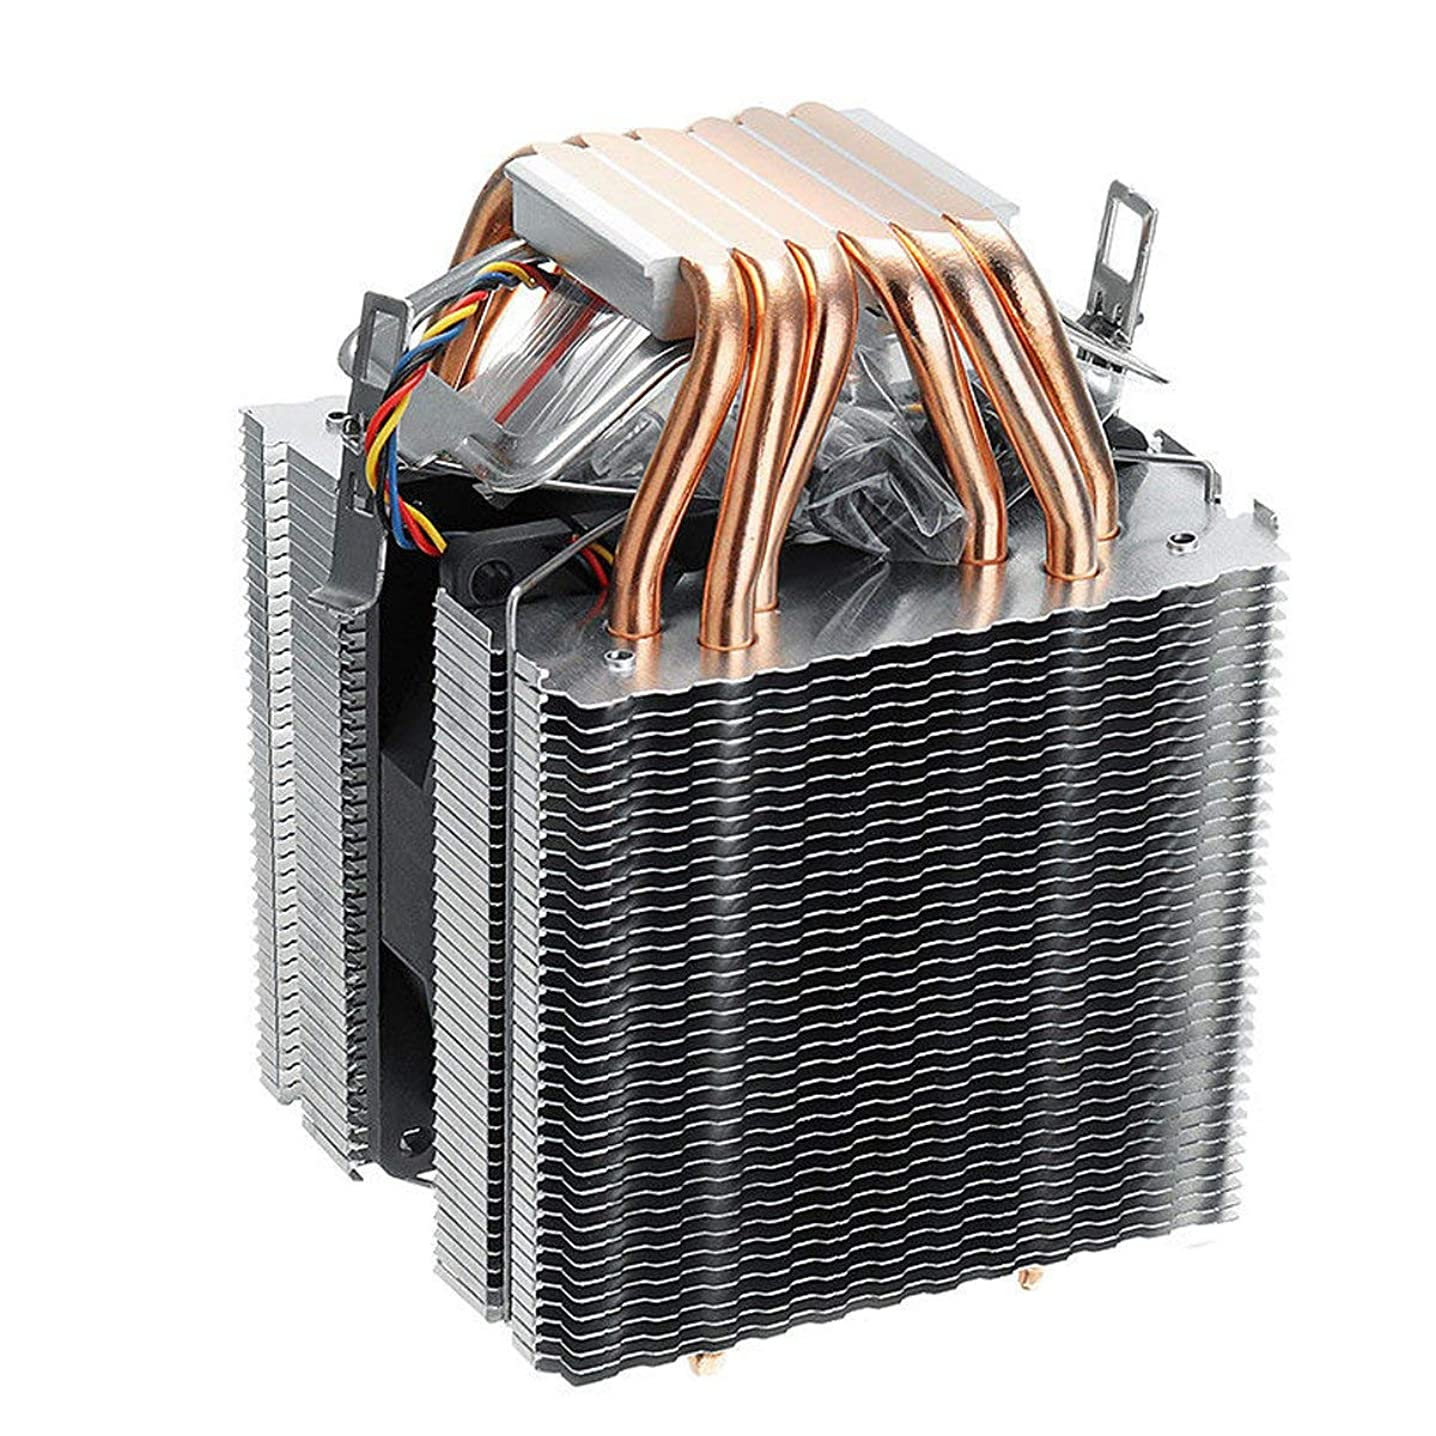 SODIAL 6 Pipes Computer CPU Cooler Fan Heatsink for Lag1156/1155/1150/775 Intel